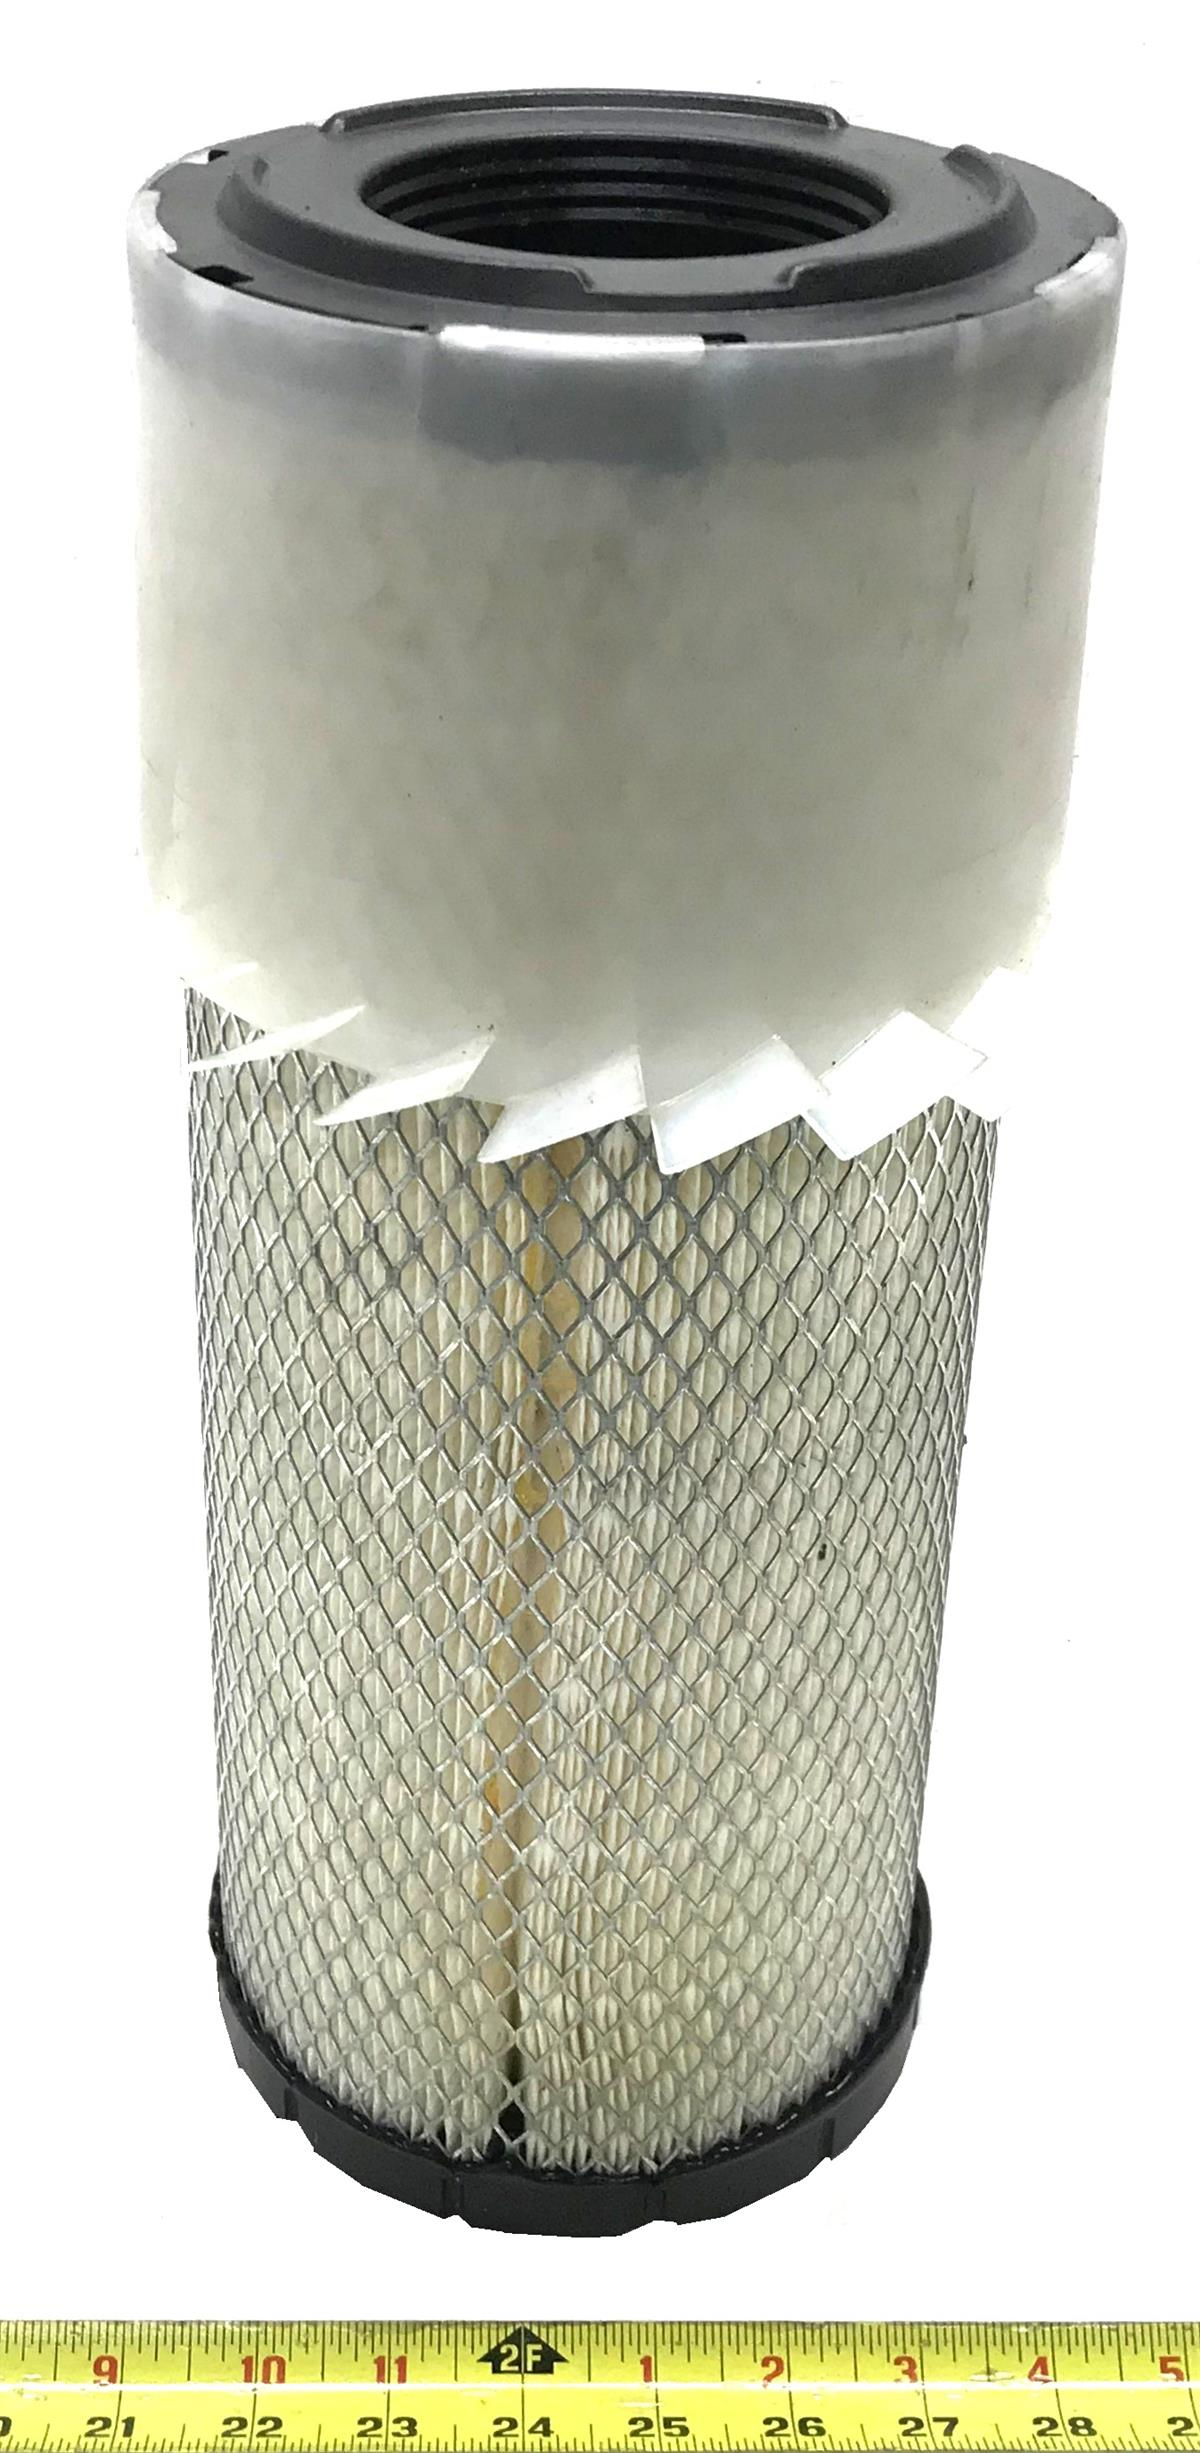 SP-2258 | SP-2258  Air Filter Cleaner Donaldson Primary Radialseal  (6).jpg